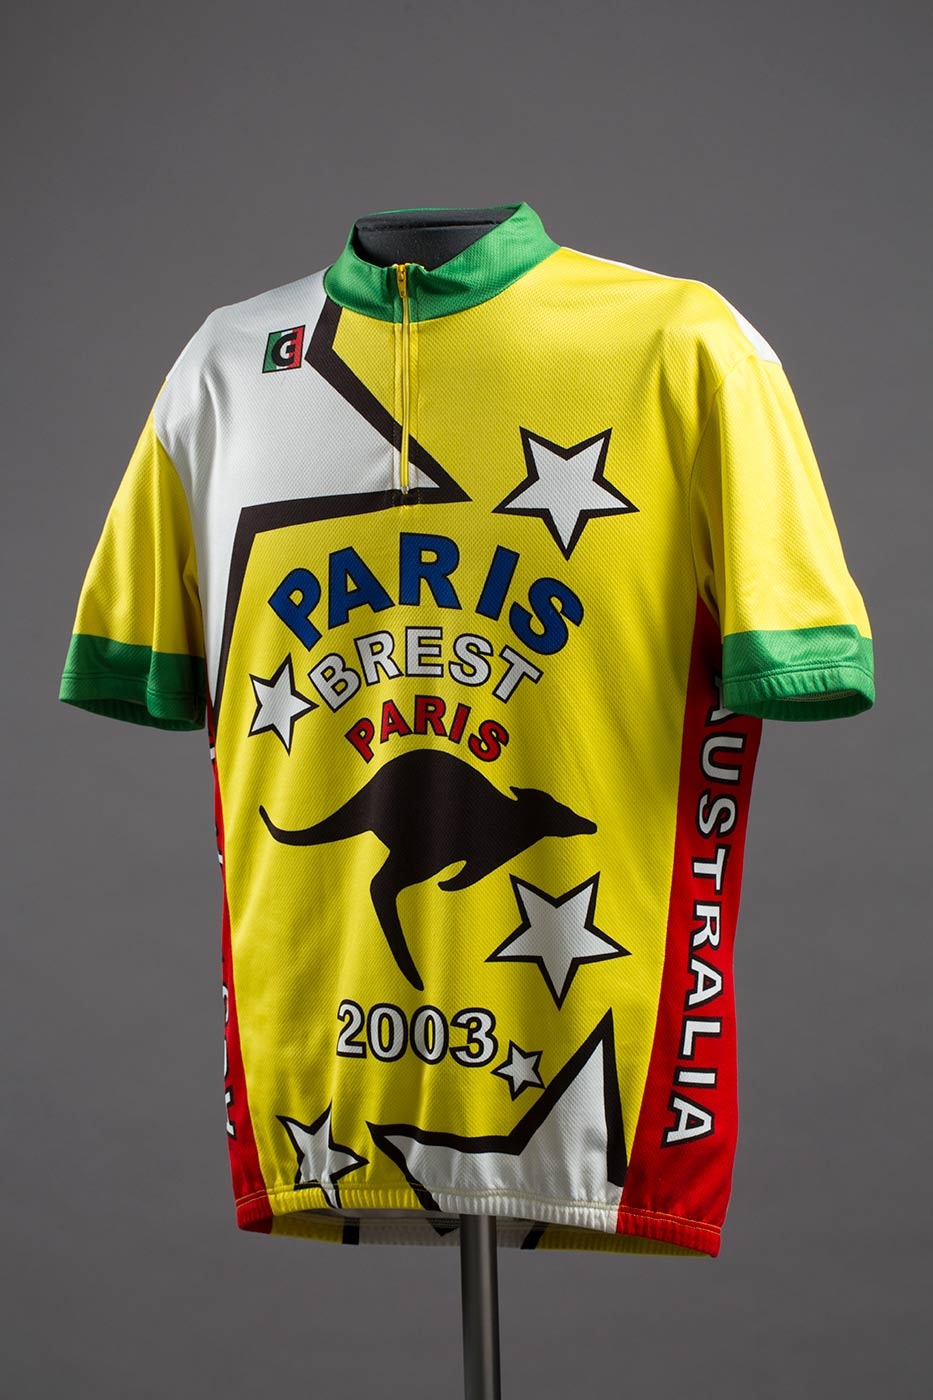 A cycling jersey which consists of a quarter zip t-shirt that is yellow down the front. The t-shirt has a green collar with green and yellow sleeves. Down the left and right side of the t-shirt is a red stripe with 'AUSTRALIA' printed in black and white within the stripe. Featured across the front of the t-shirt are various white stars, a black outline of a kangaroo and text that reads 'PARIS / BREST / PARIS / 2003'. The text is blue, white, and red in colour. The front right side of the t-shirt has a 'GIRAMONDO' logo that is green, white, red and black in colour. - click to view larger image